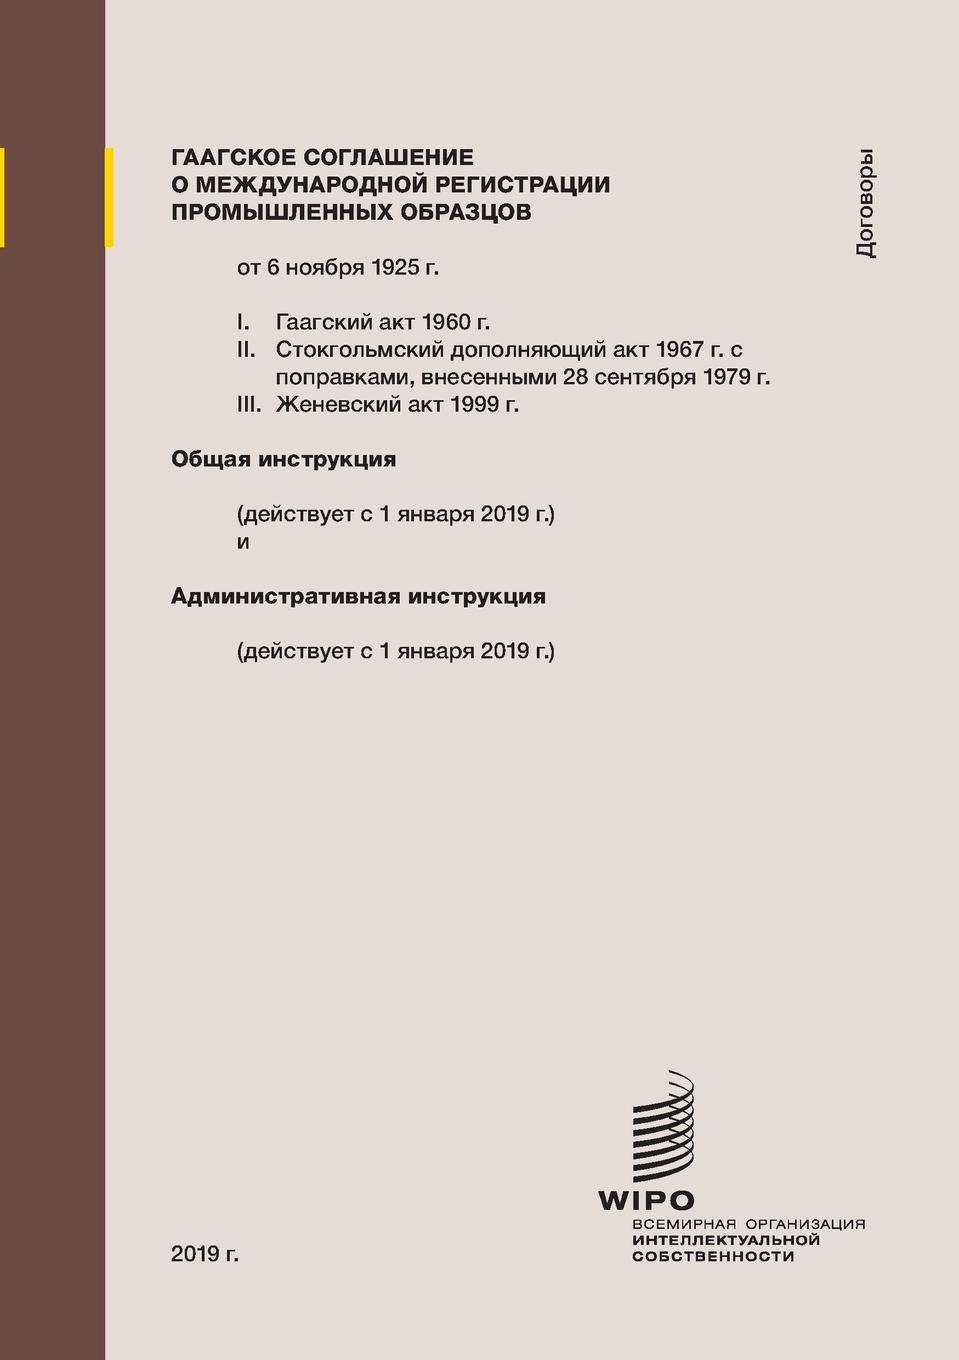 Hague Agreement Concerning the International Registration of Industrial Designs, Common Regulations as in force on January 1, 2019 (Russian edition)